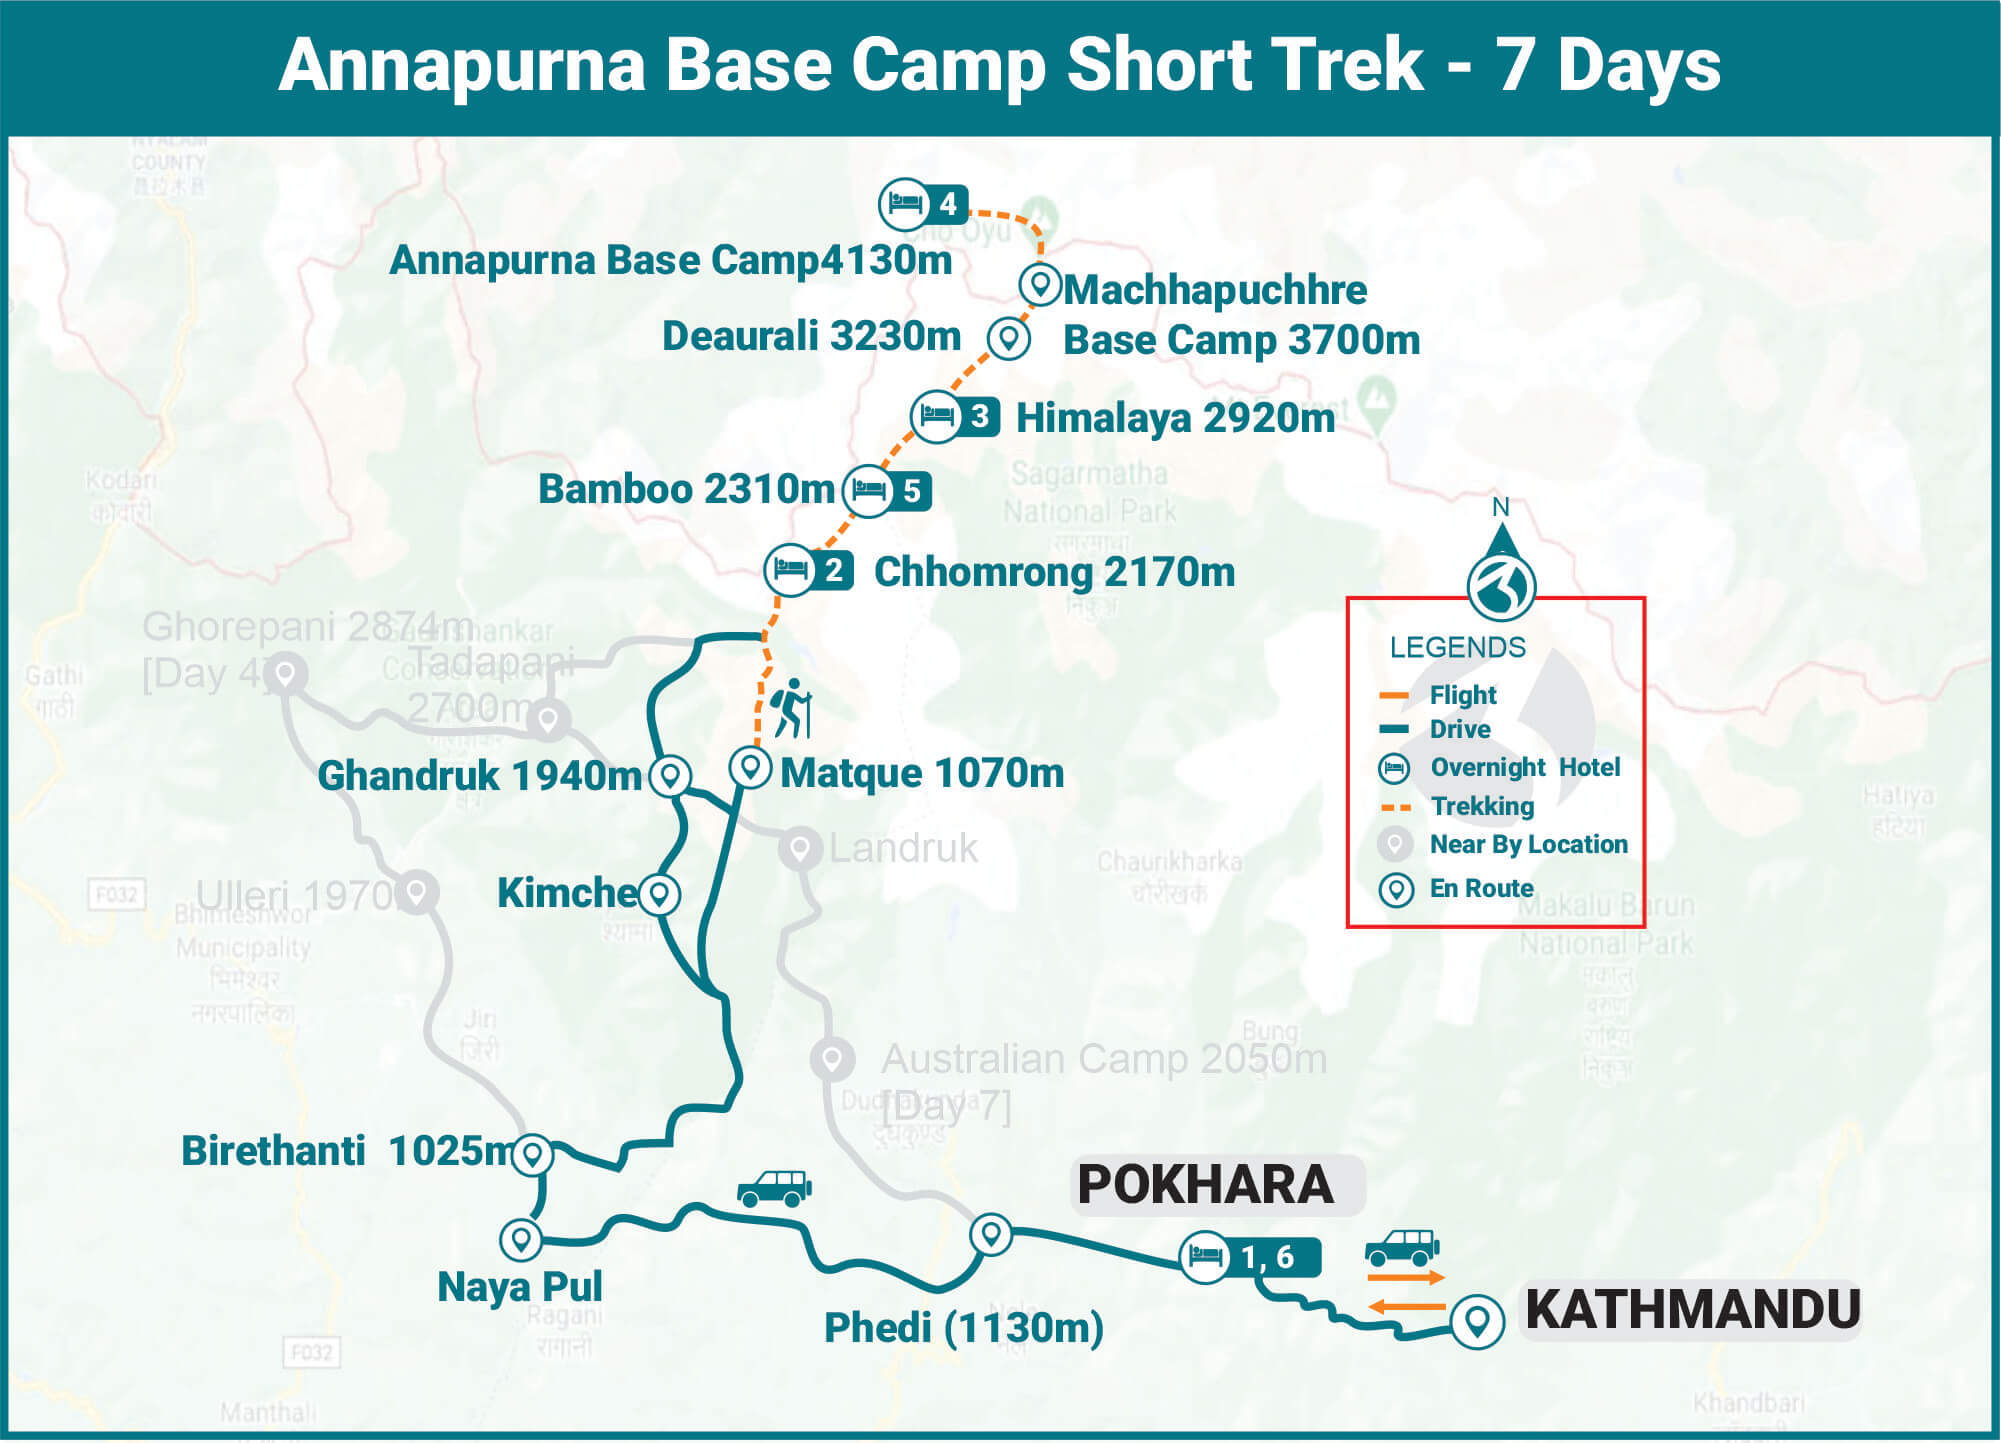 Annapurna Base Camp Short Trek 7 Days Route Map